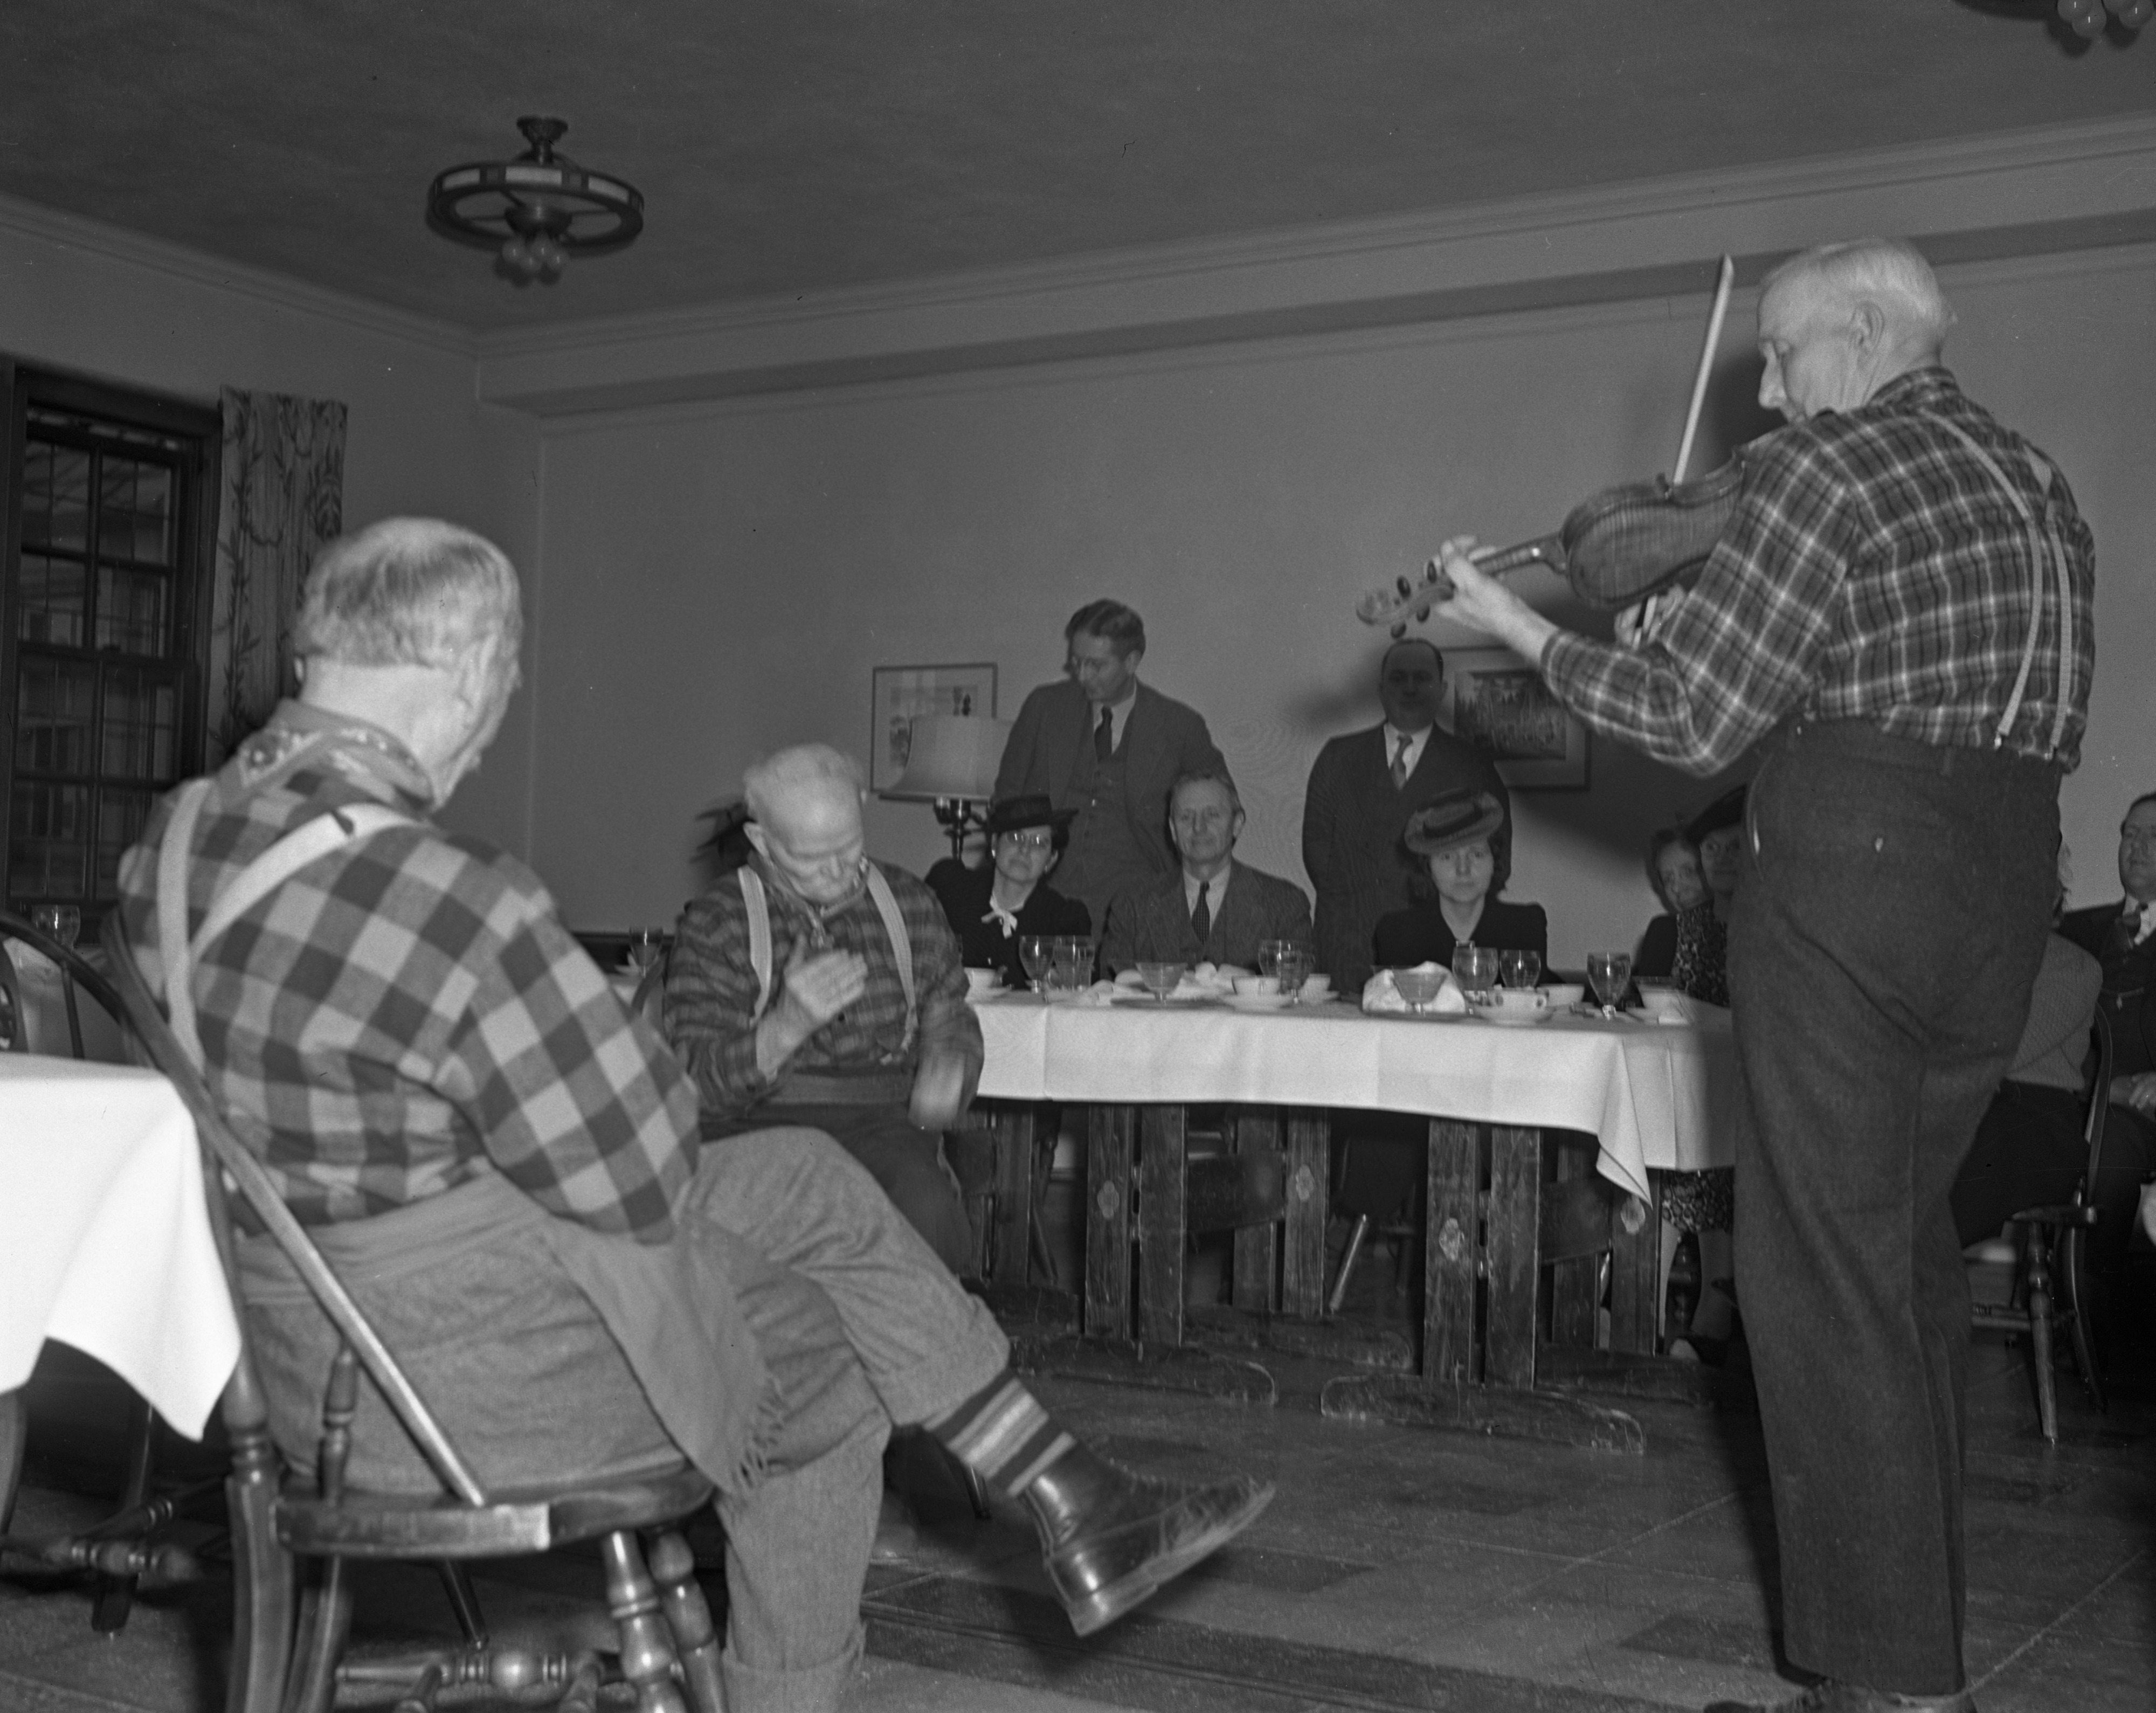 Lumberjacks Entertain Scholars At Luncheon, March 1941 image